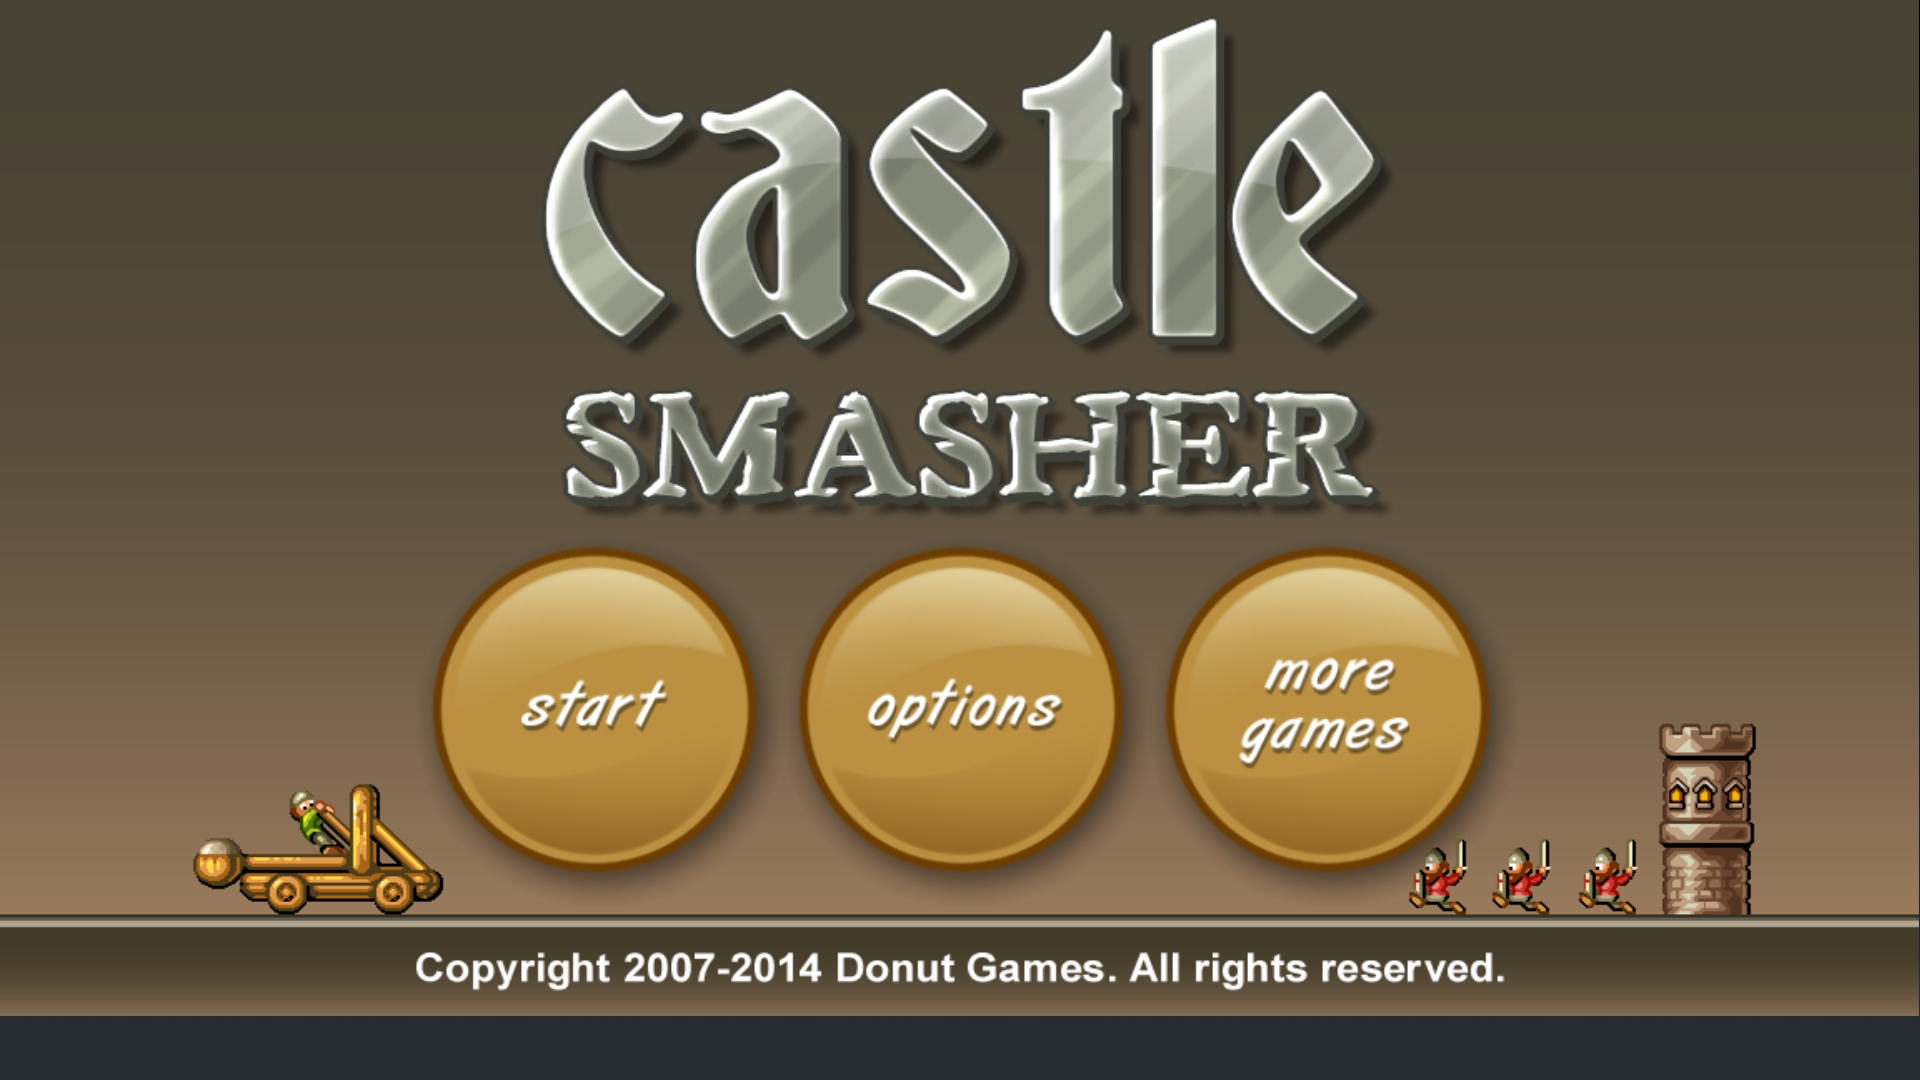 Bamse: Castle Smasher: Challenges: 22 Purple City (Android) 66 points on 2019-09-05 03:13:44